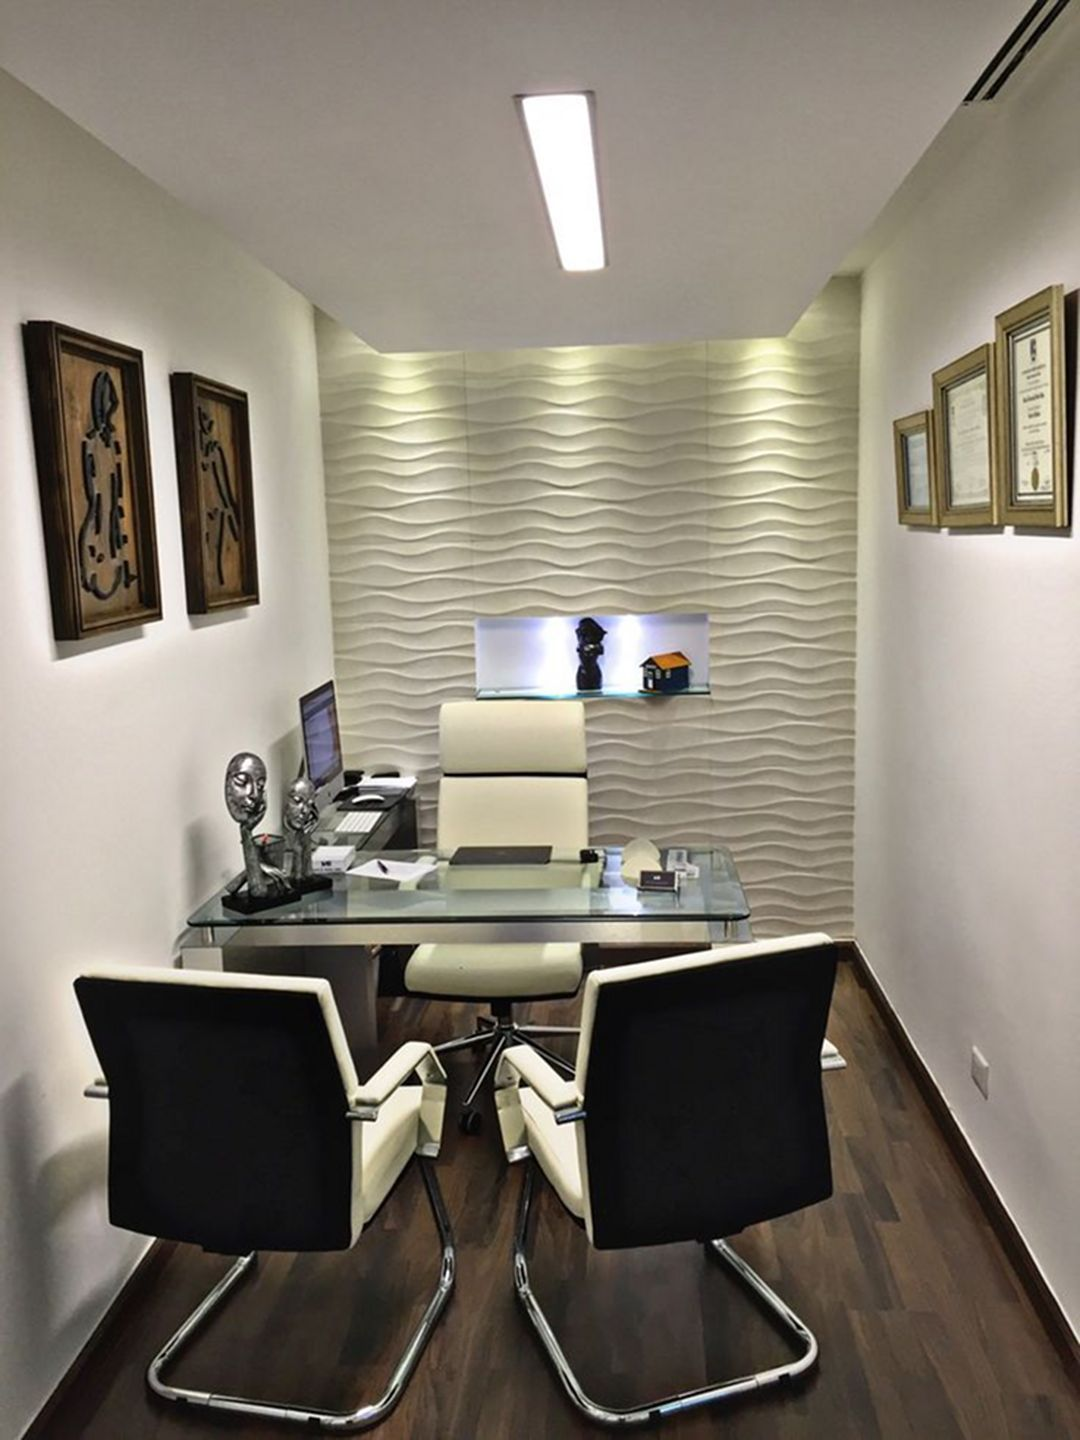 Pin By Khaled Seleem On House Idea Small Office Design Interior Small Office Design Home Office Design